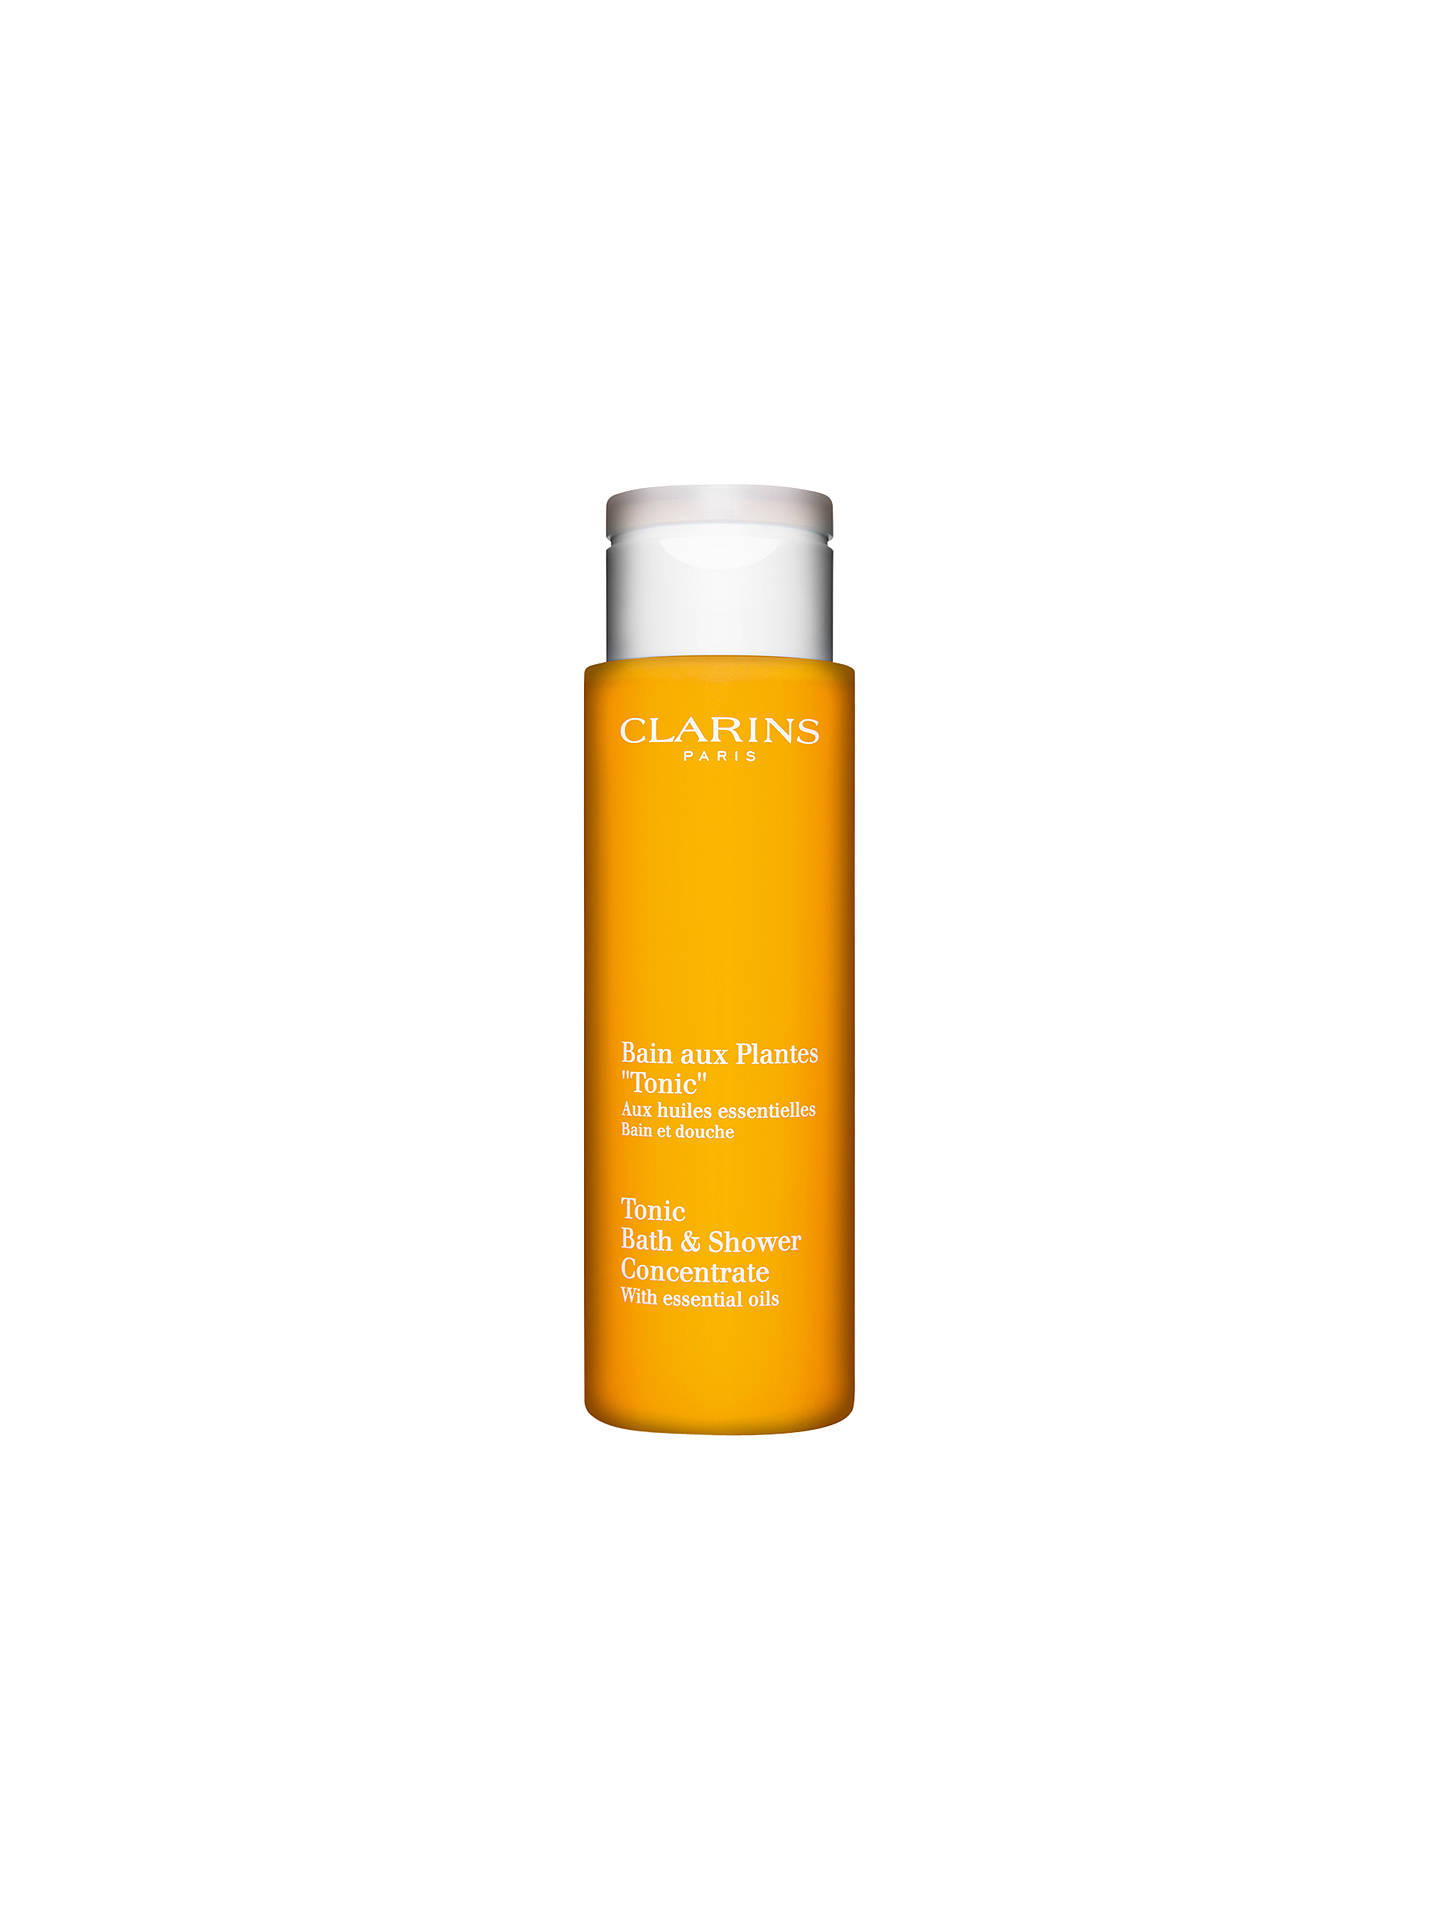 BuyClarins Tonic Bath and Shower Concentrate Bath Foam, 200ml Online at johnlewis.com